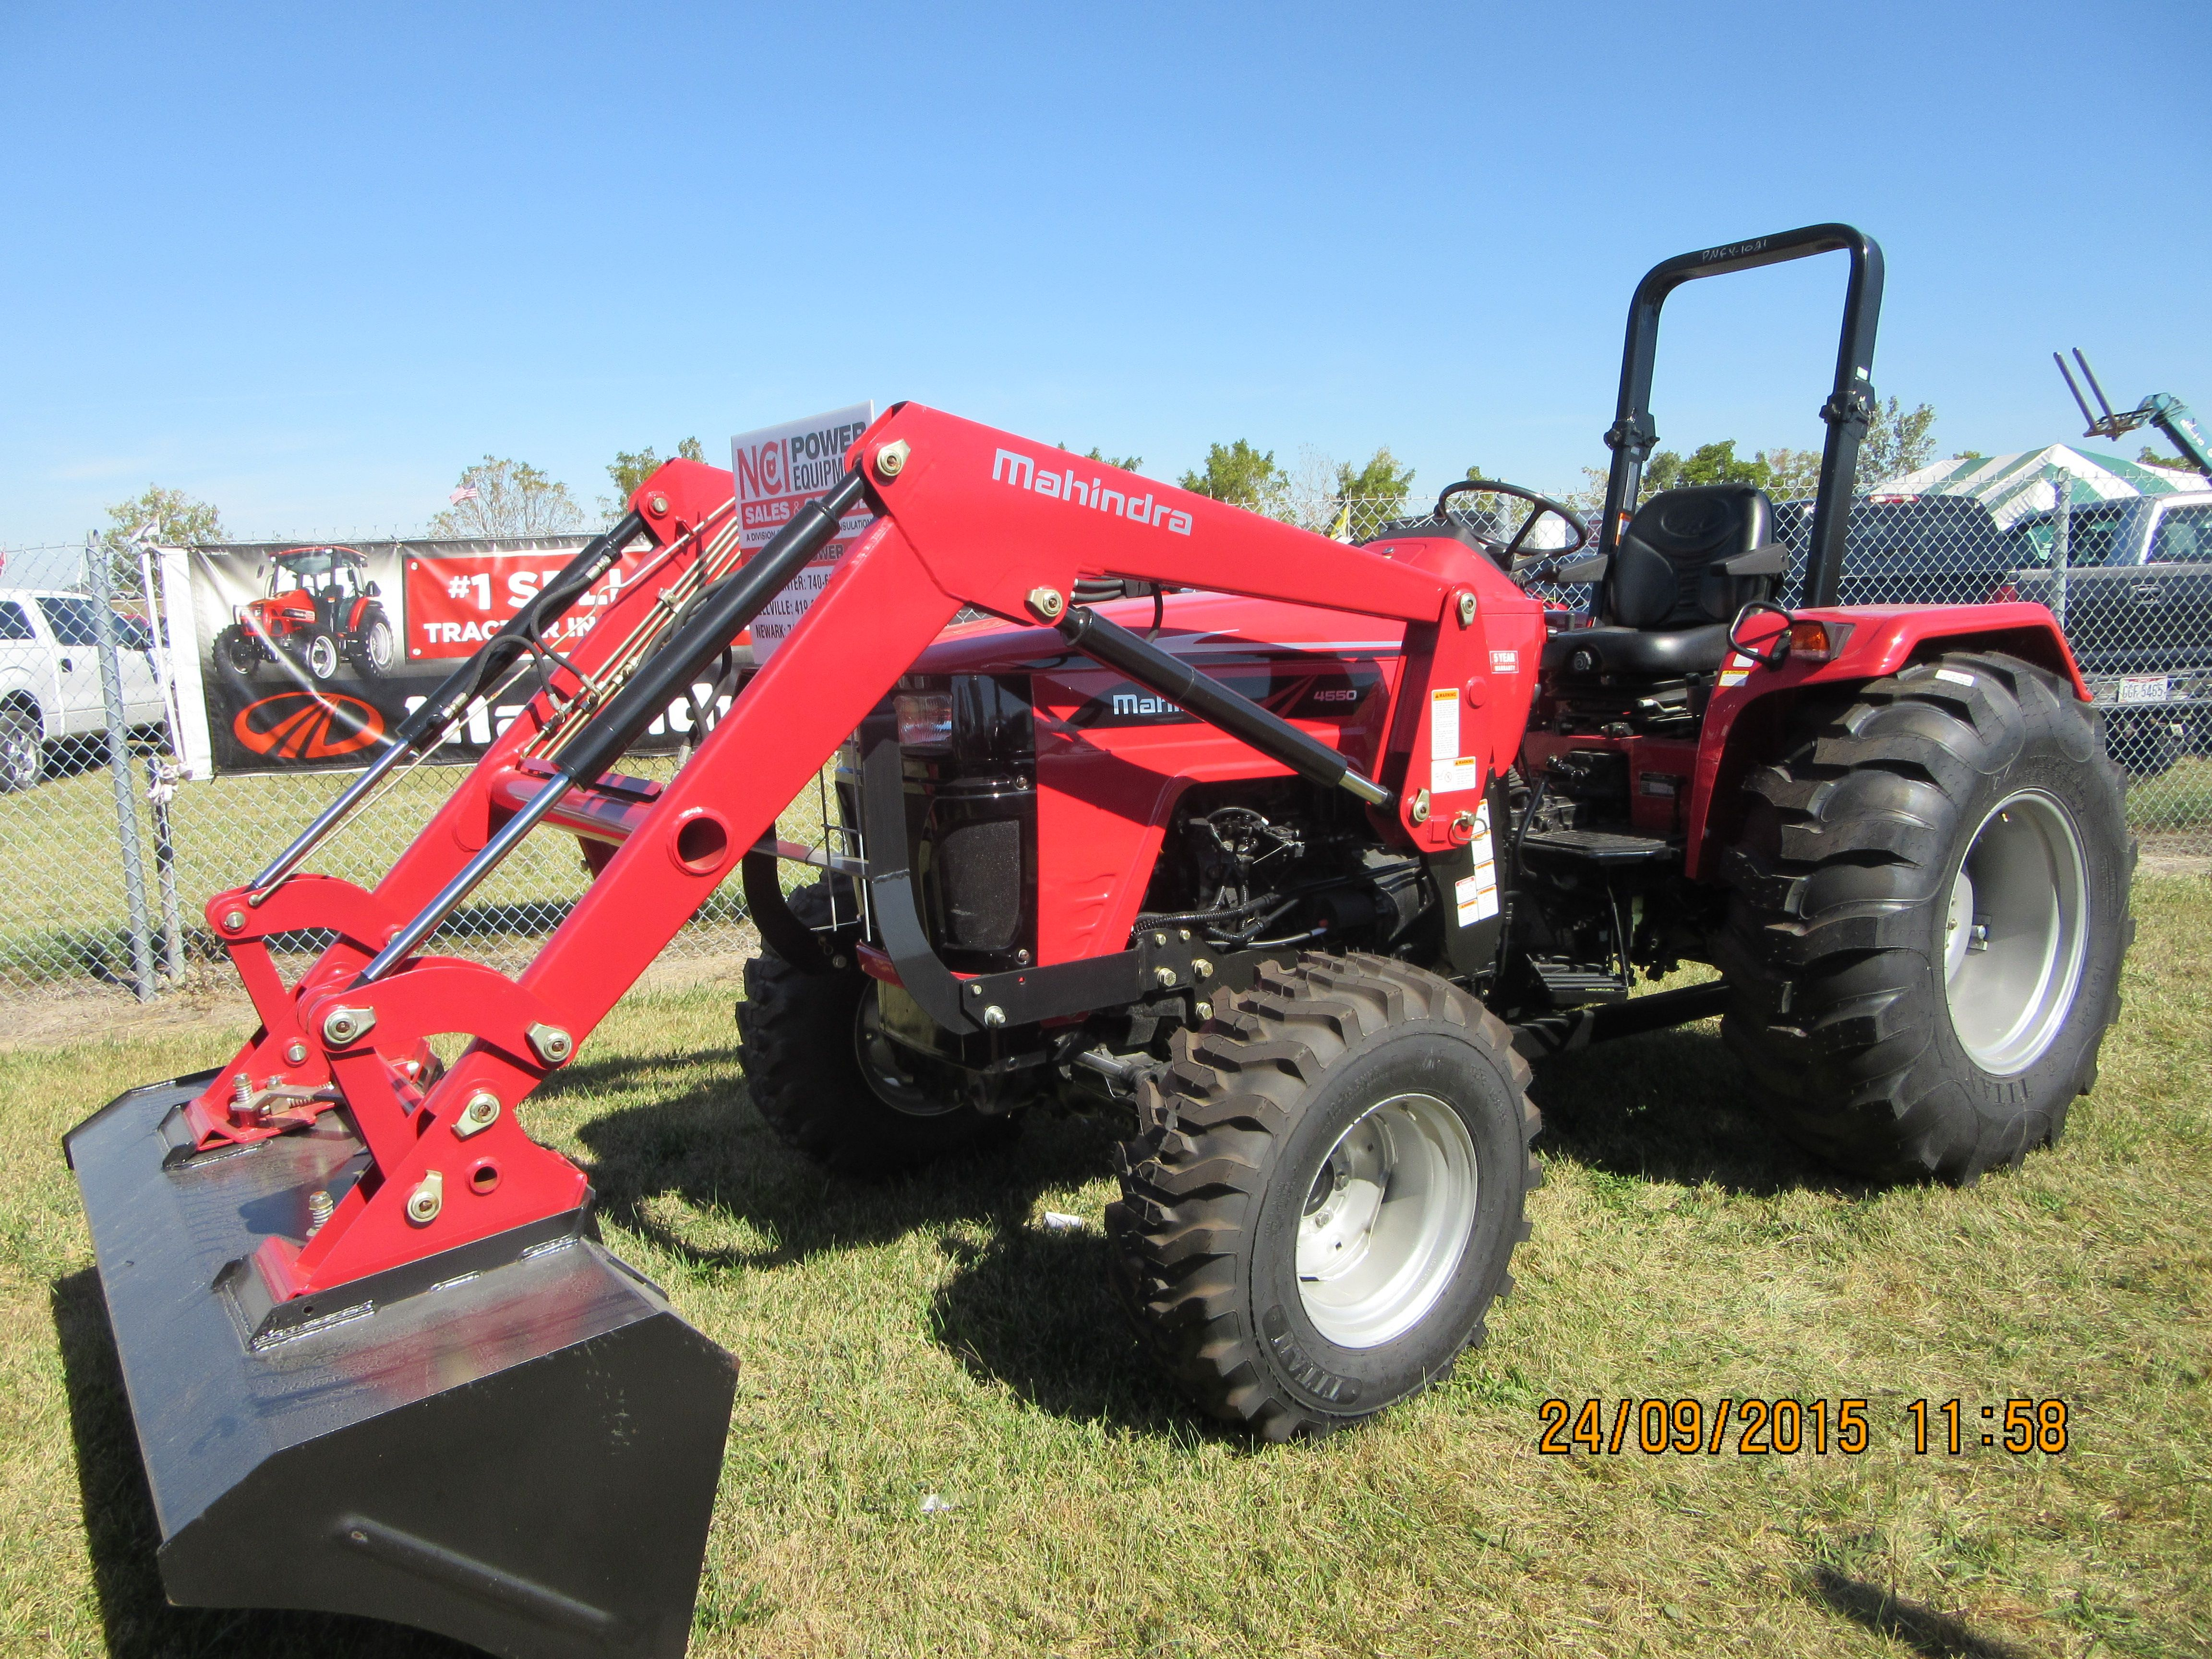 Mahindra 4550 equipped with loader